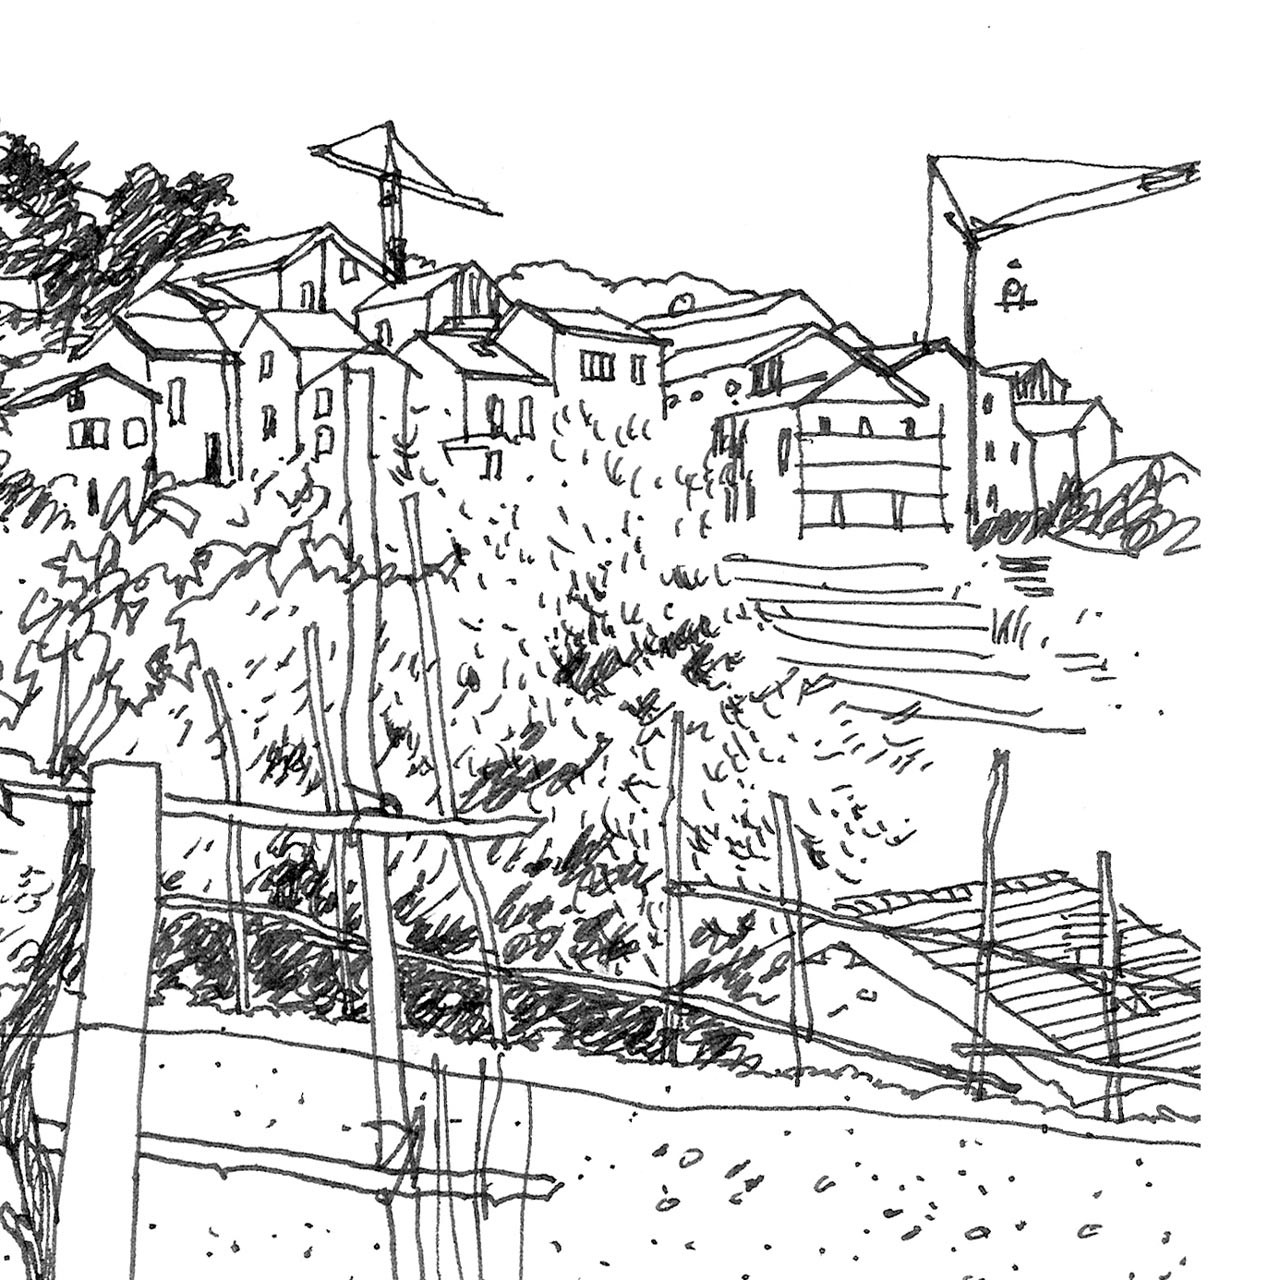 'Vineyard' Art Print (ink drawing by David Cobley) from The Printed Home